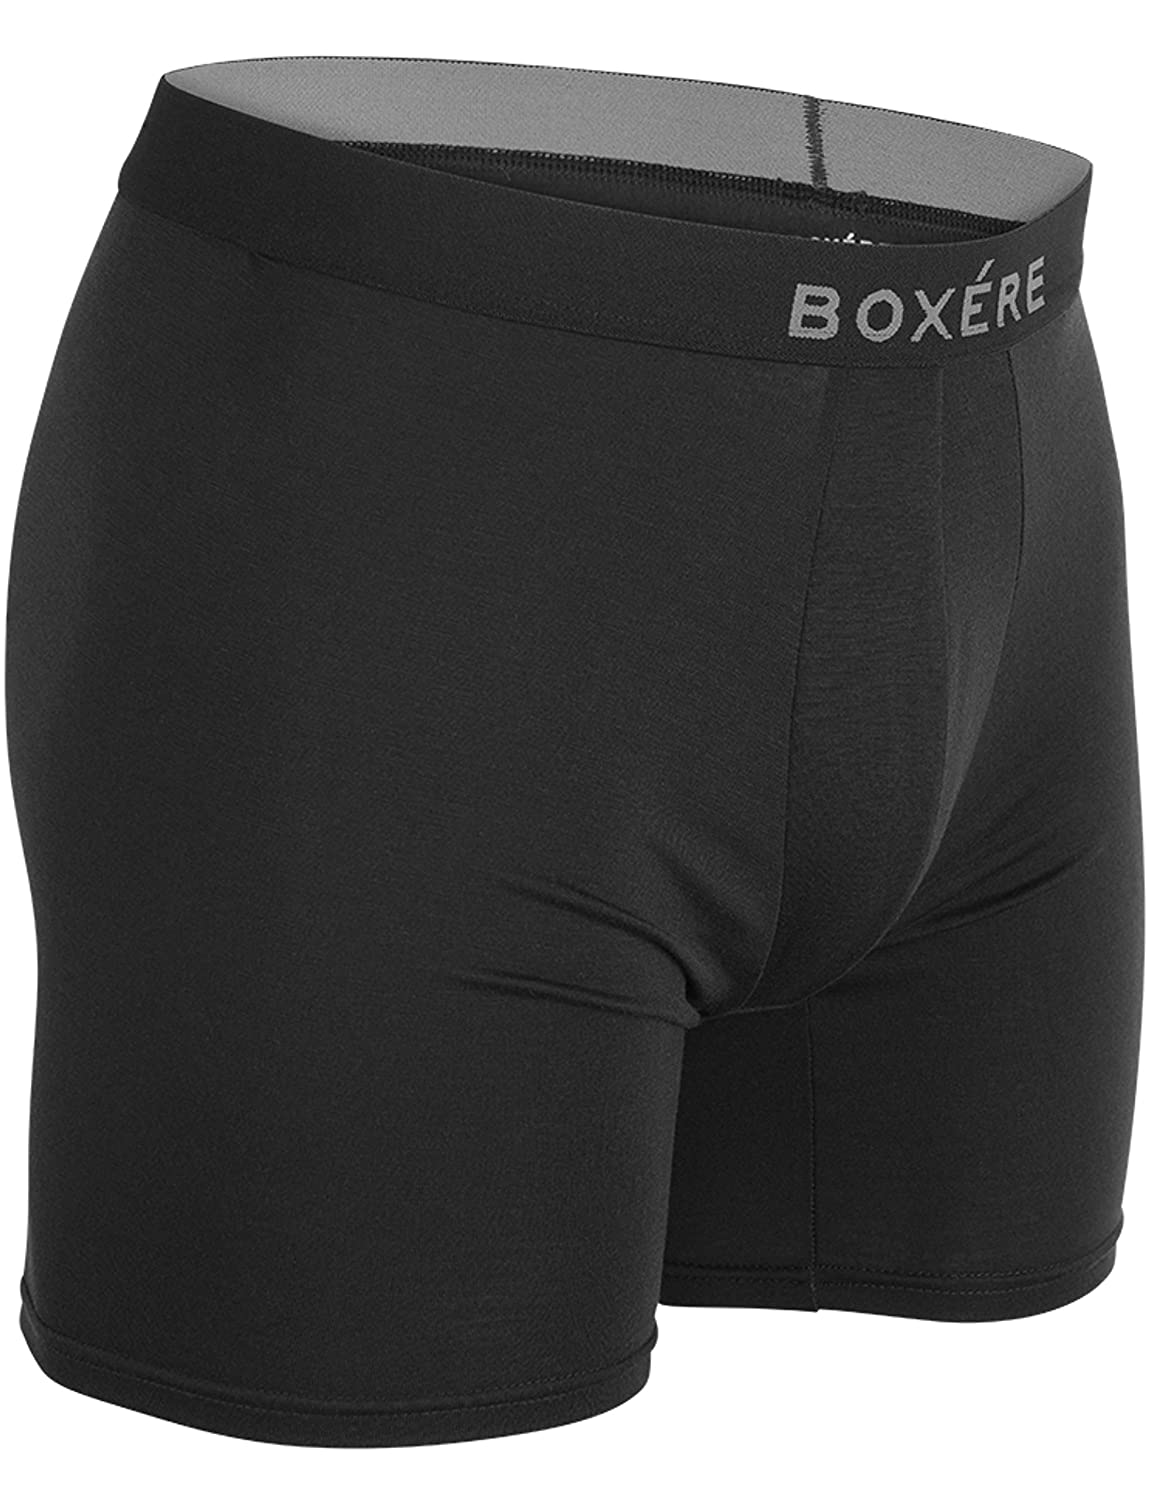 Soft and Breathable Modal Underwear Box/ére Mens Boxer Briefs Shorts Ultra Comfy